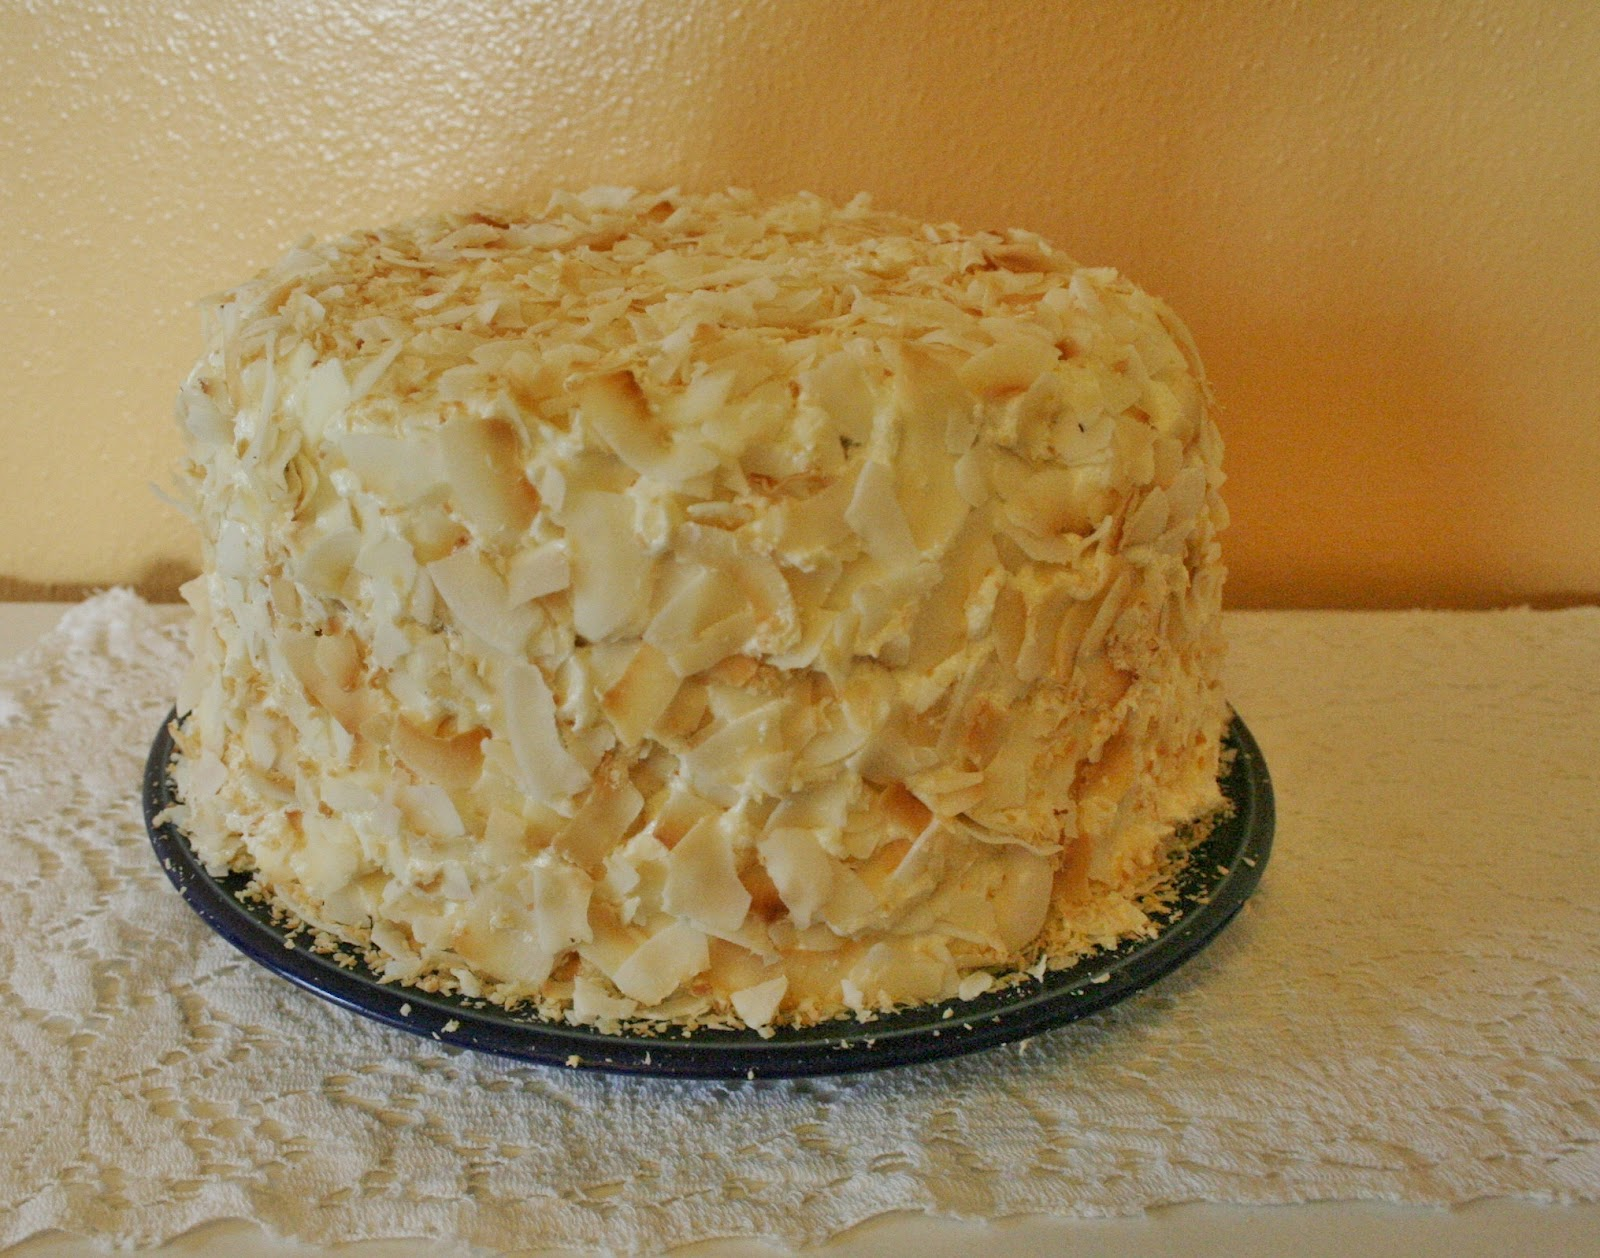 Breathe in and Bake: Coconut Southern Comfort Layer Cake